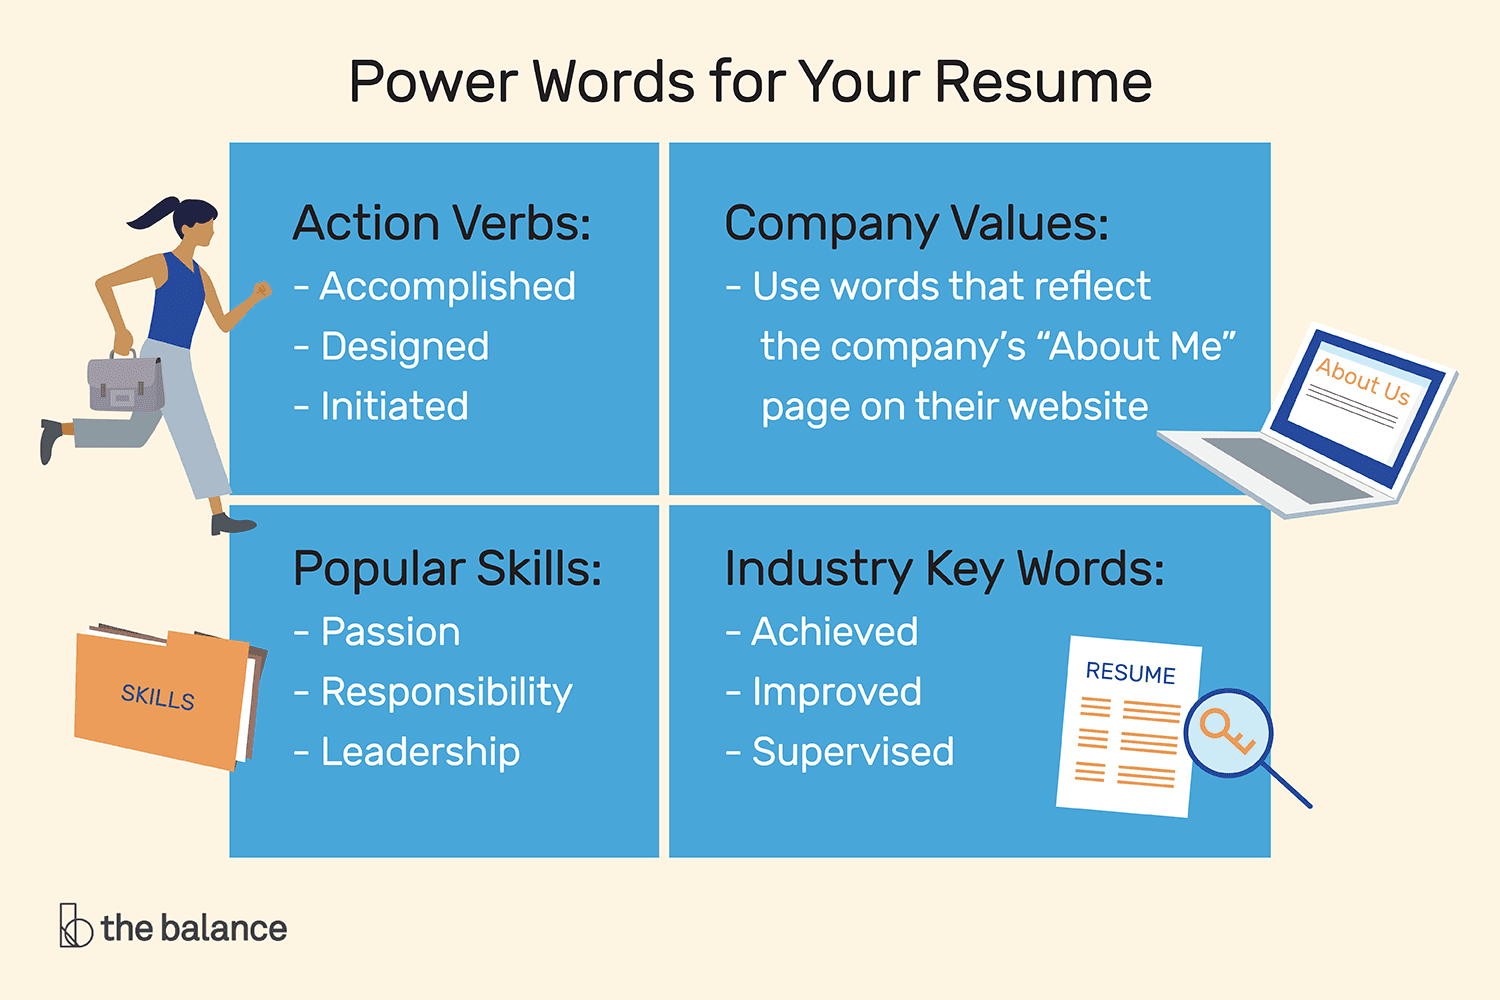 Resume Words To Use The Top Power Words To Use In Your Resume